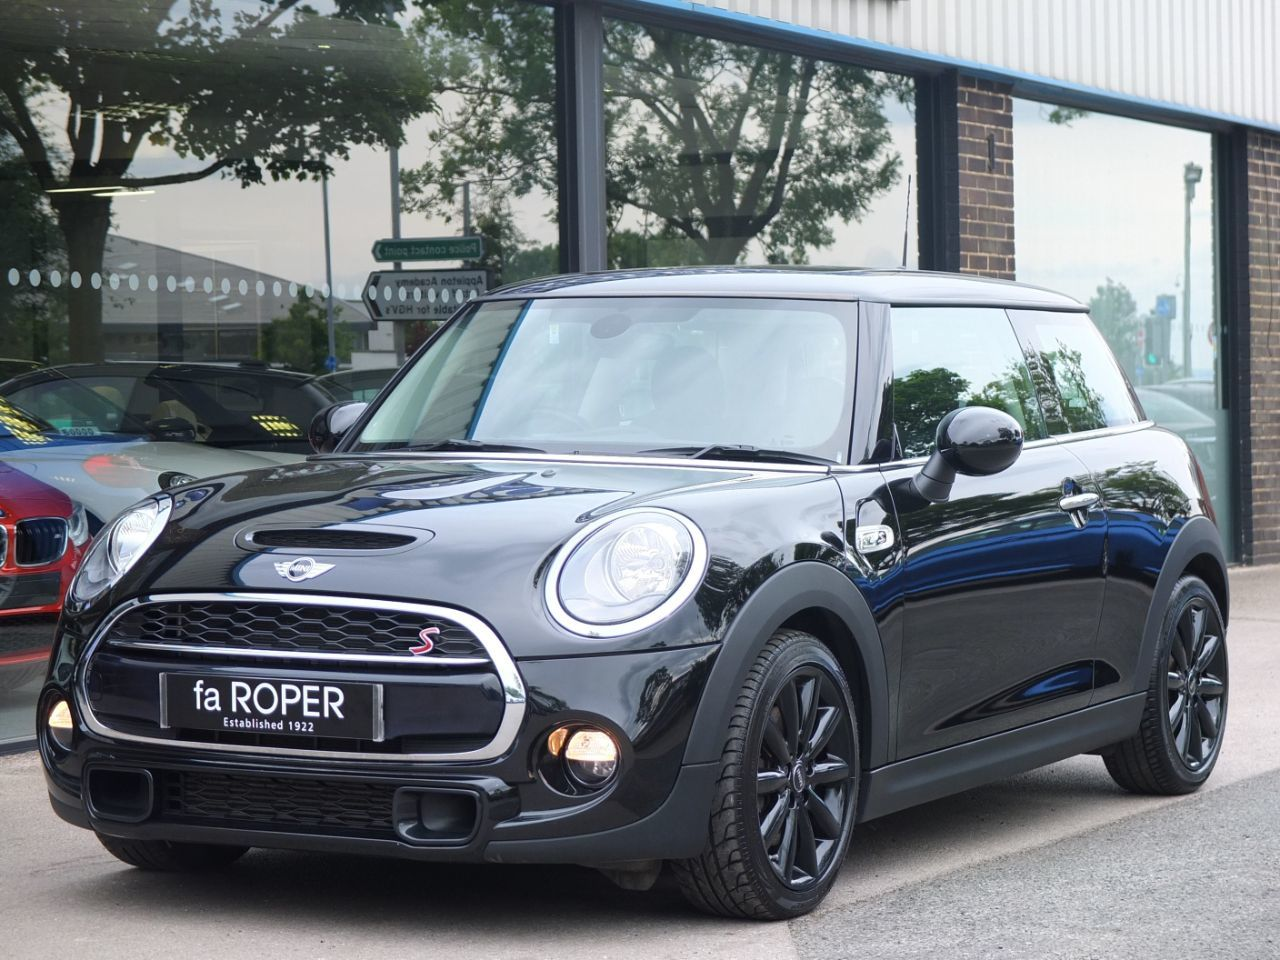 Mini Hatchback 2.0 TD Cooper SD Sport 3 door Auto Hatchback Diesel Midnight Black MetallicMini Hatchback 2.0 TD Cooper SD Sport 3 door Auto Hatchback Diesel Midnight Black Metallic at fa Roper Ltd Bradford